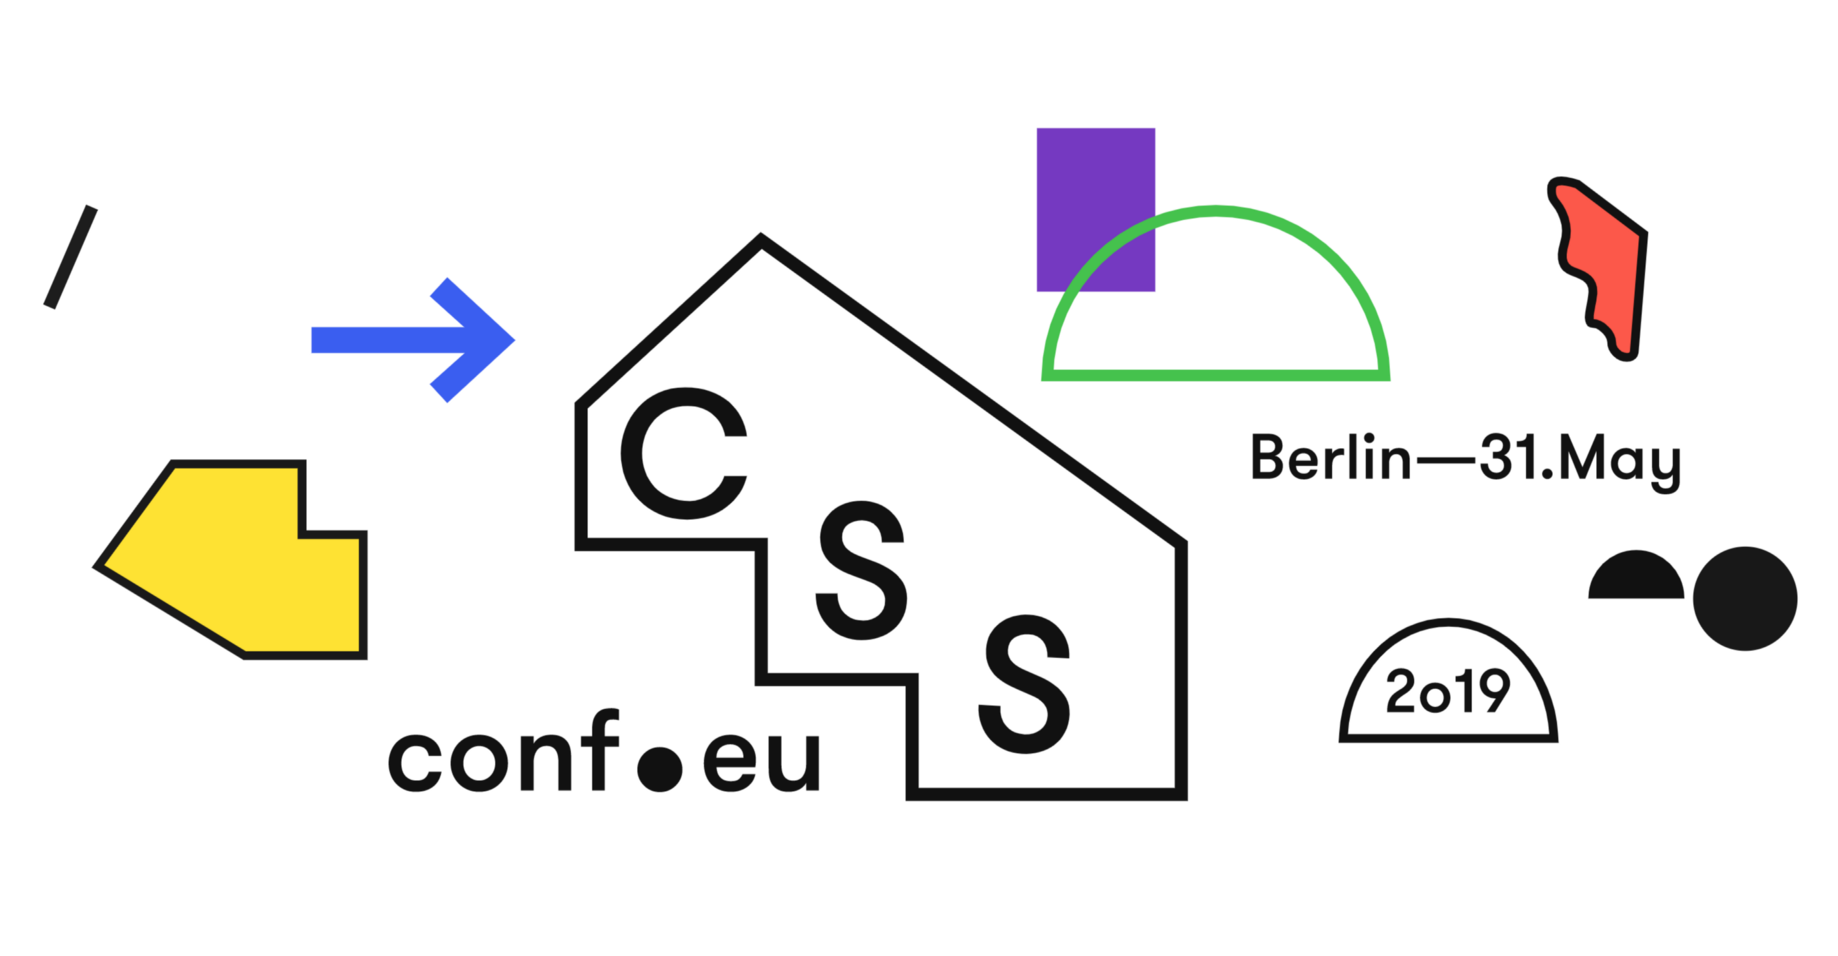 CSSconf EU 2019: A Great Community Experience for Those Who Love and